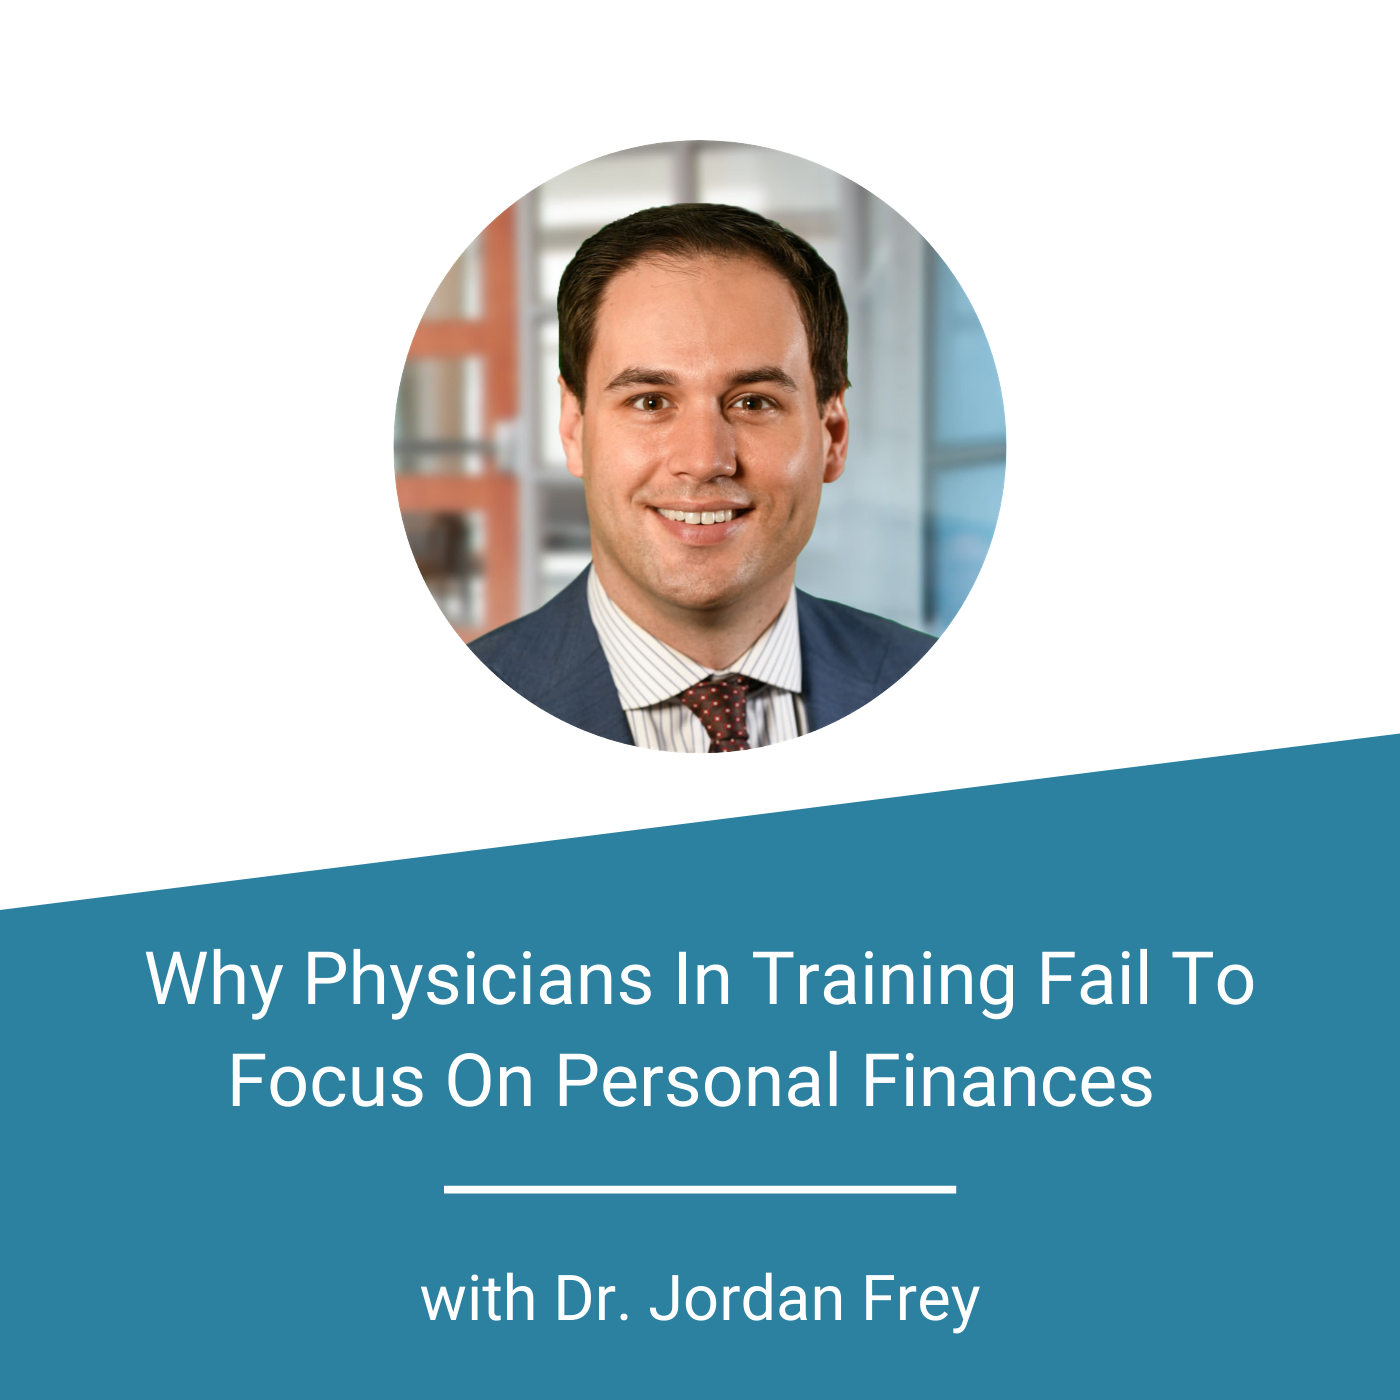 Finance For Physicians - Why Physicians In Training Fail To Focus On Personal Finances with Dr. Jordan Frey